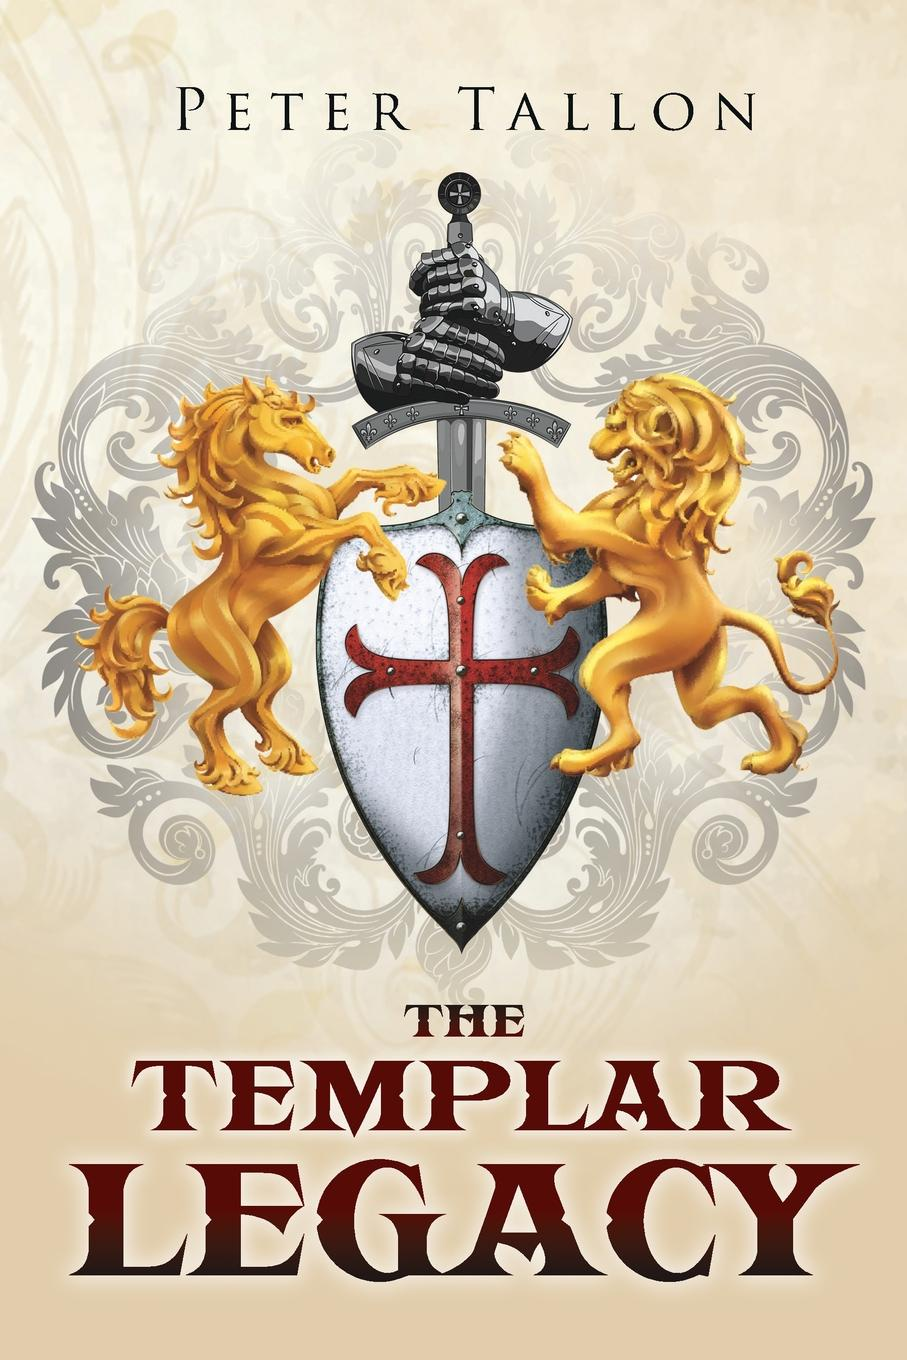 Peter Tallon The Templar Legacy christopher hodapp the templar code for dummies